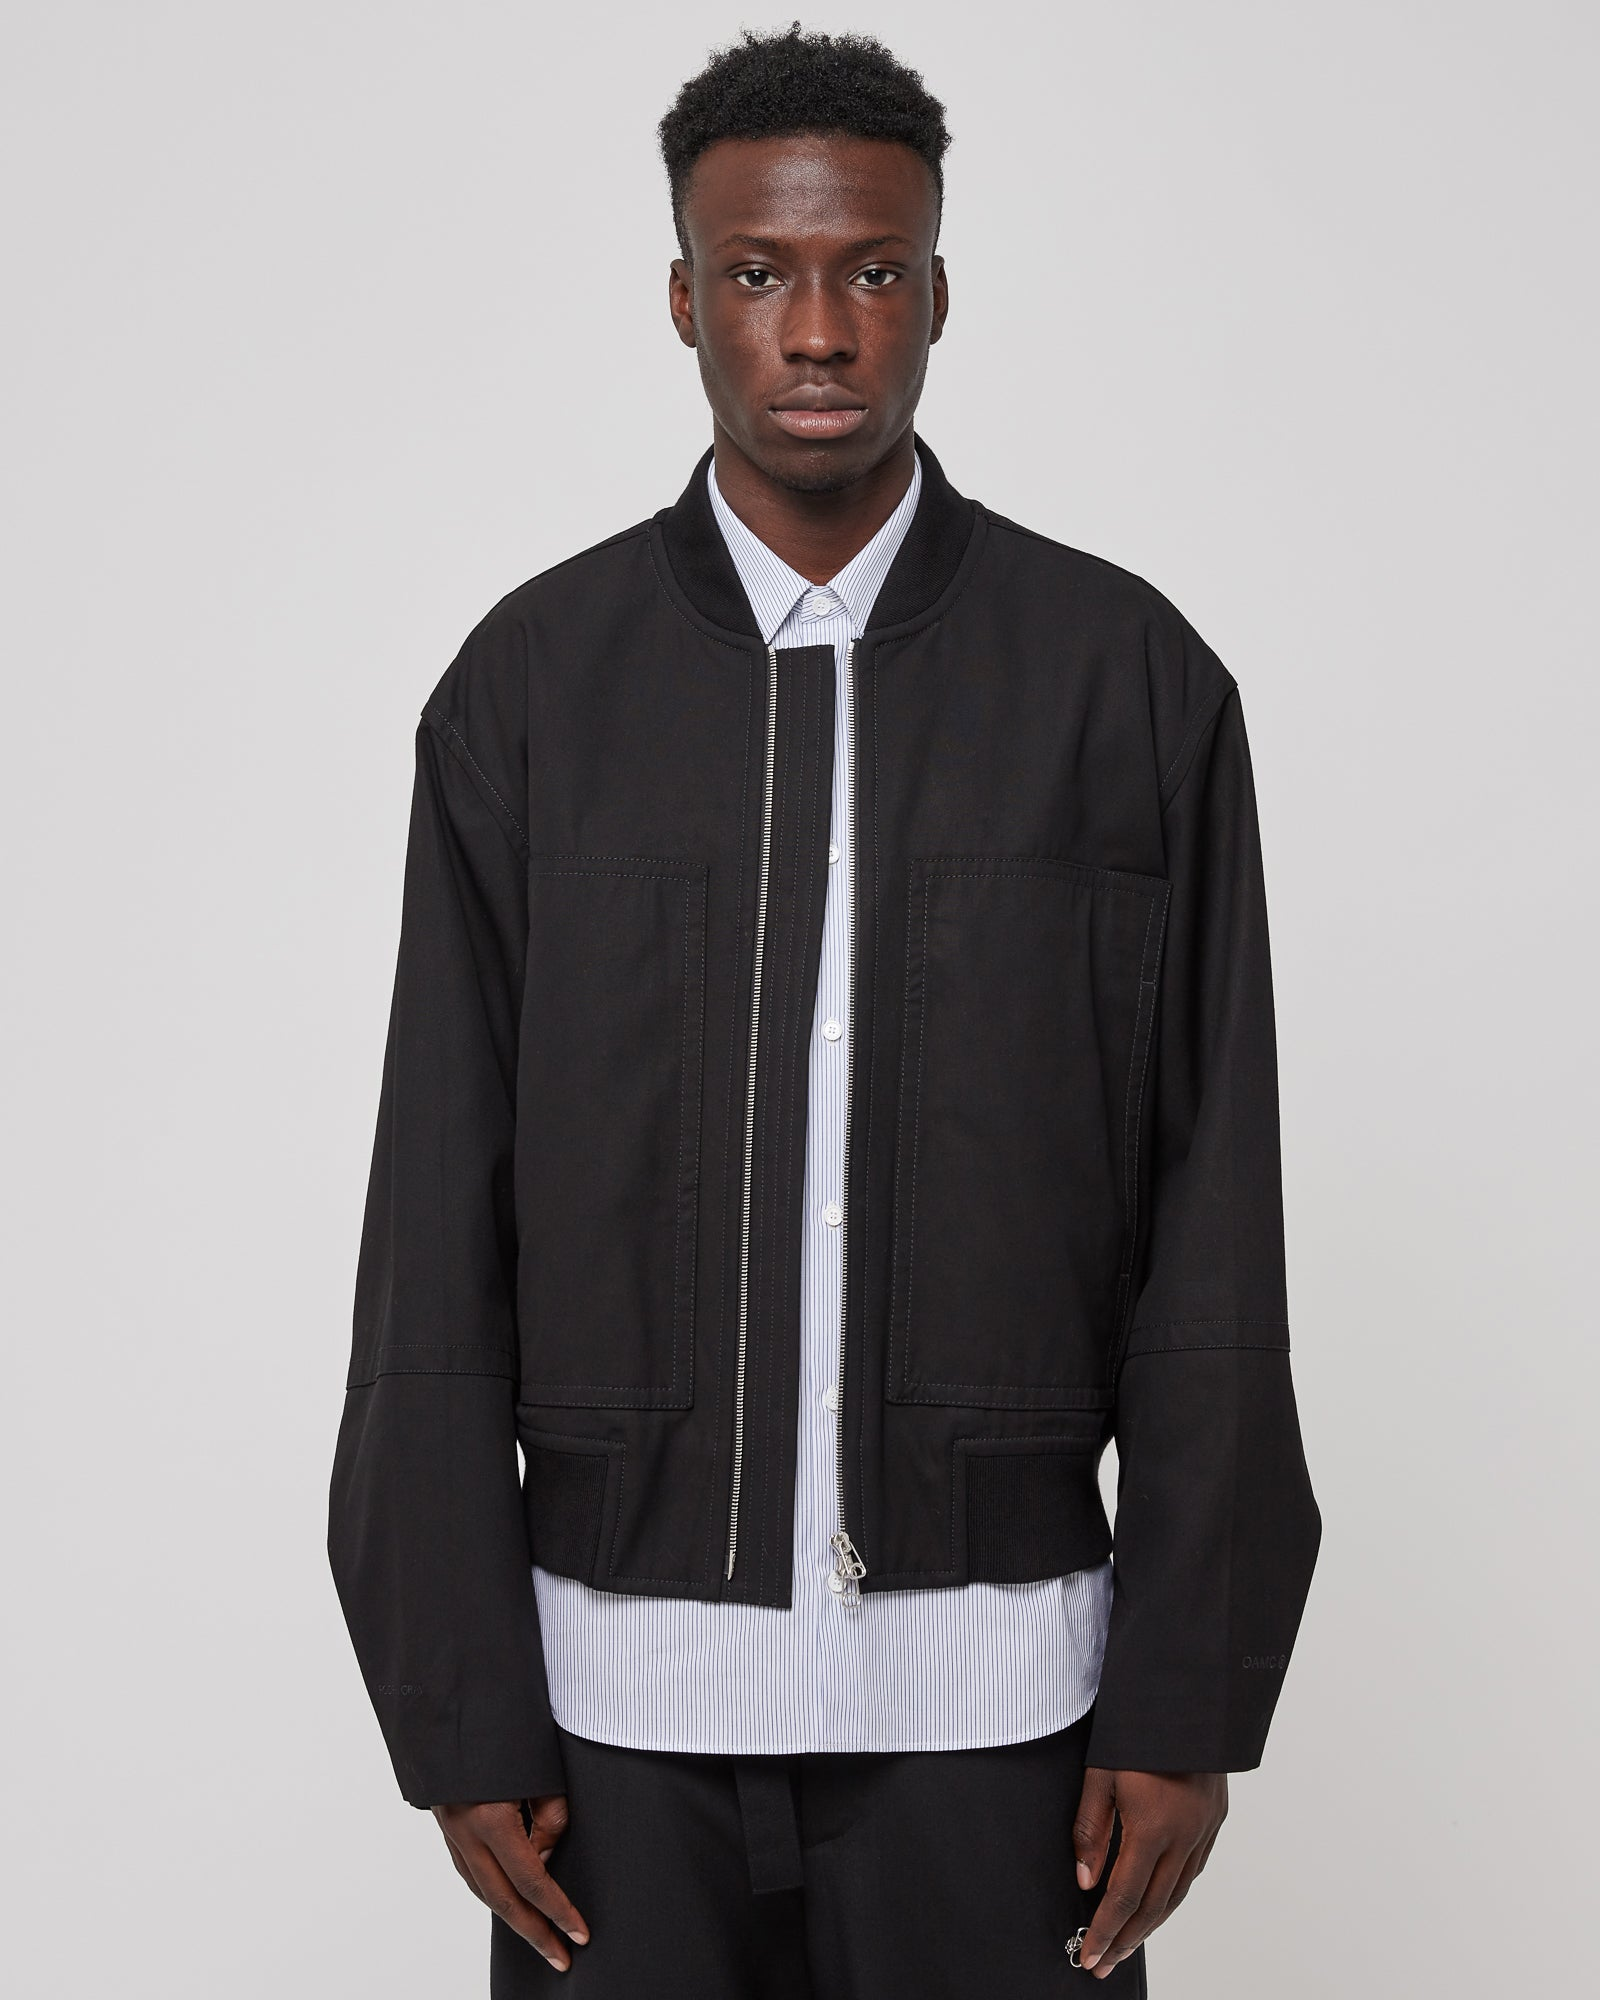 Roden Gray Bomber Jacket in Black